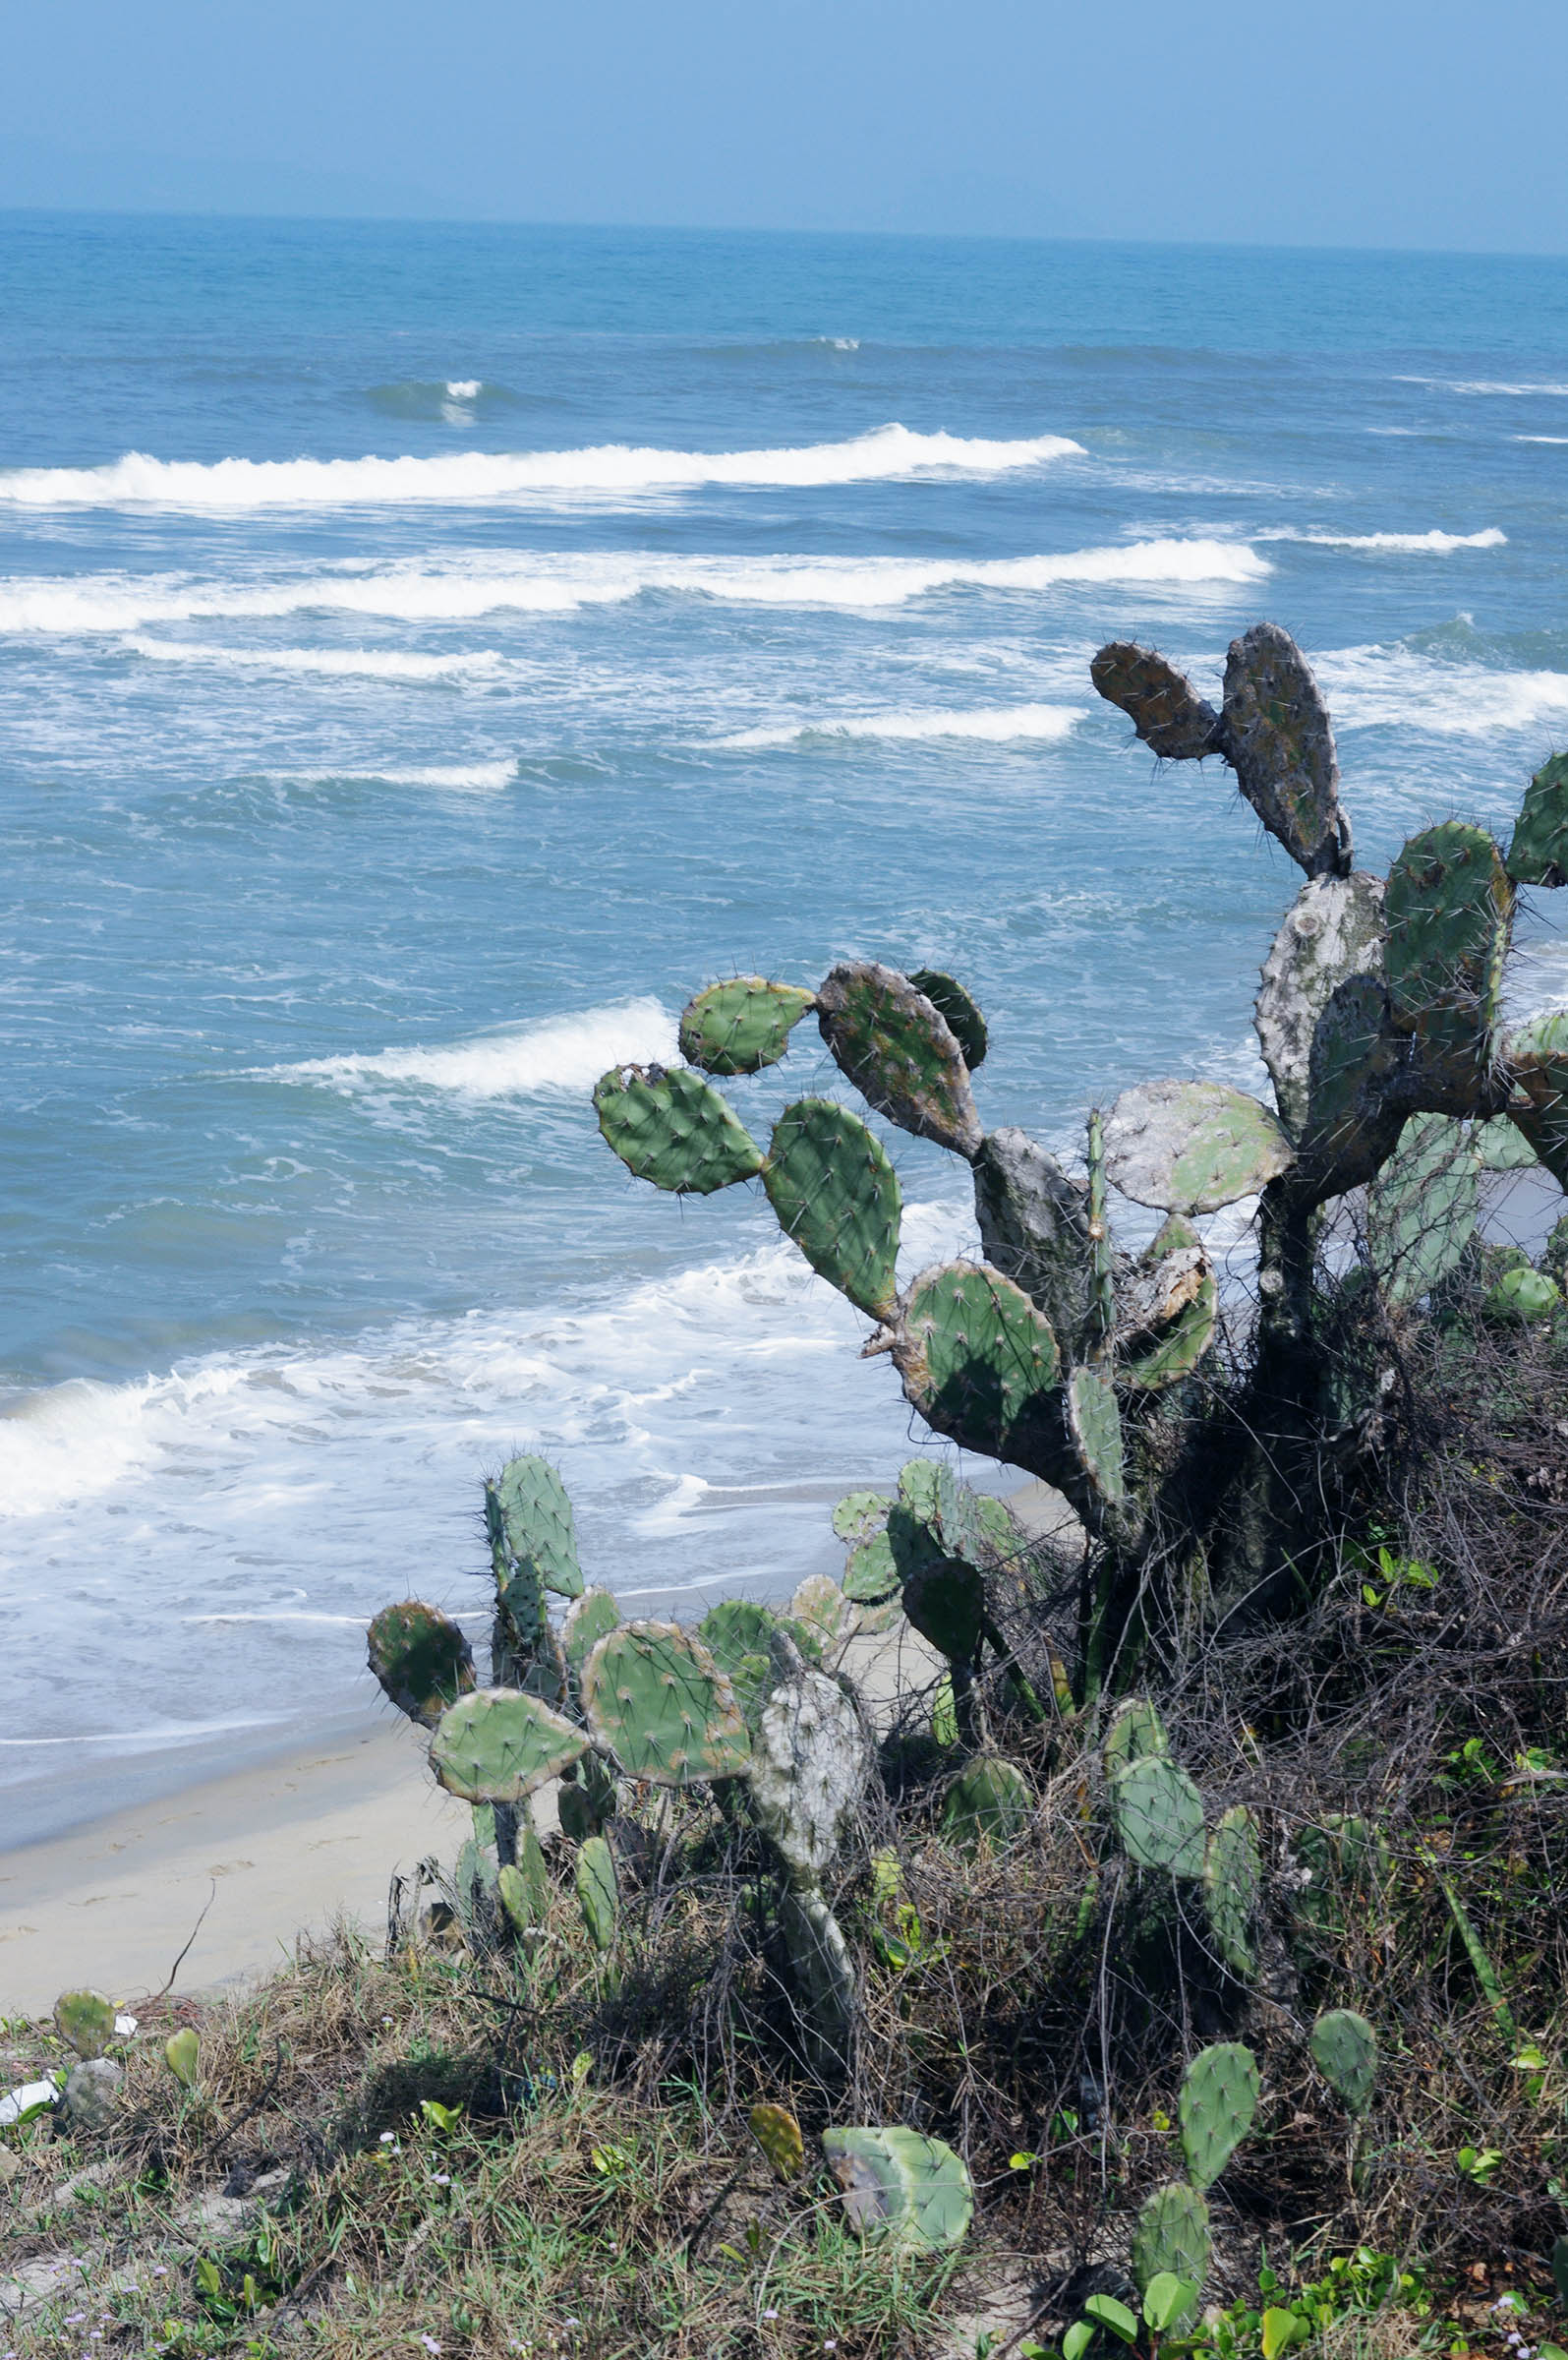 Cactus on the beach